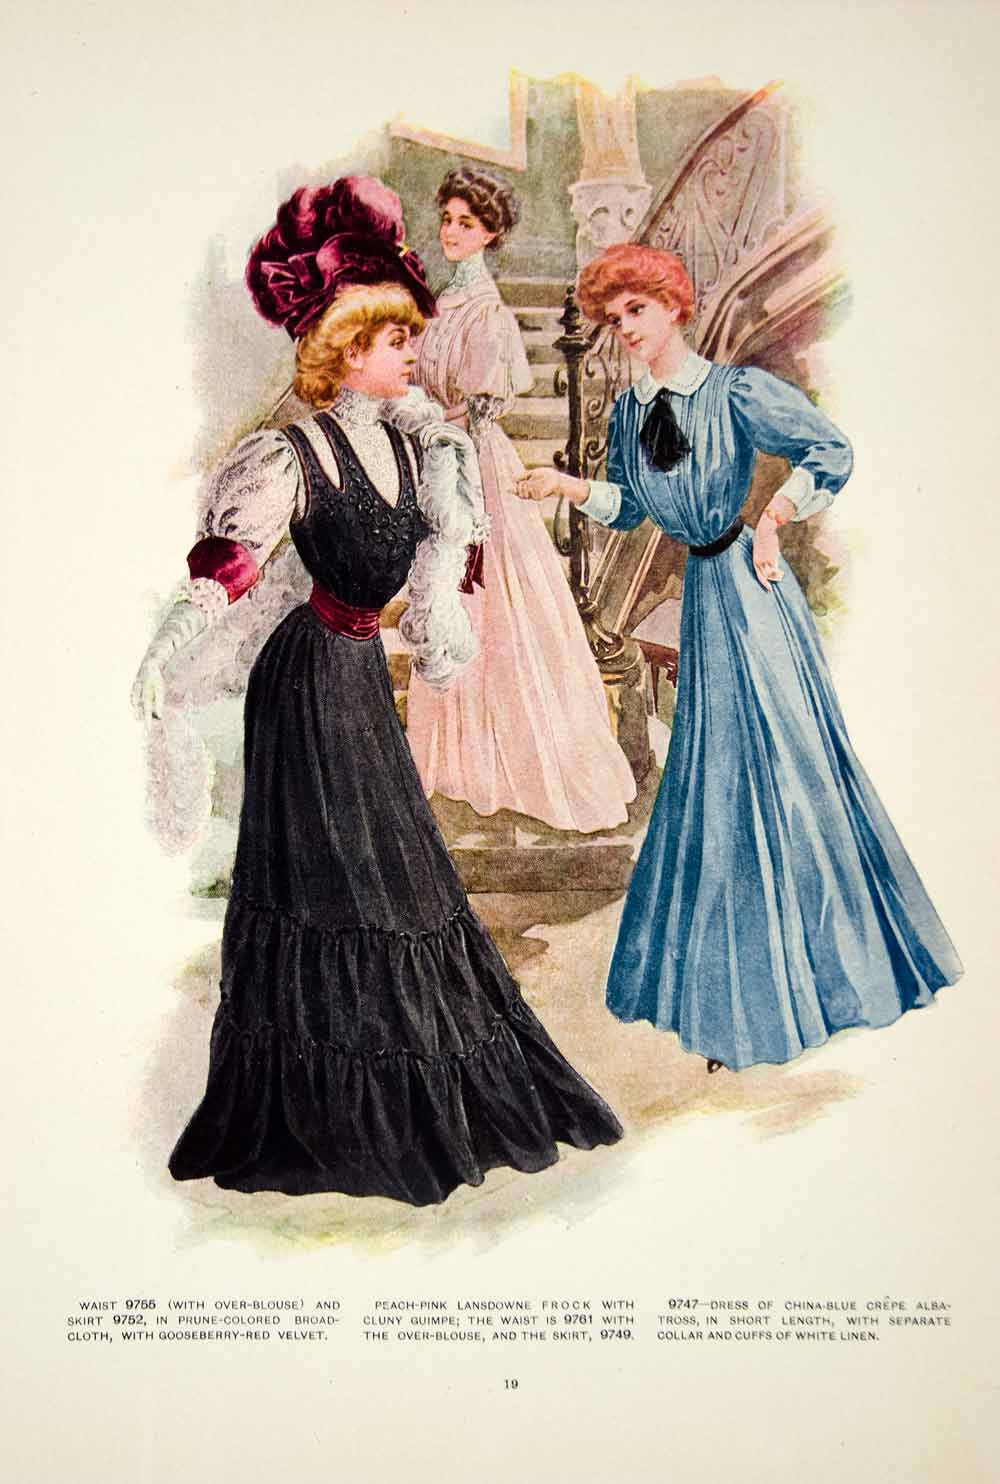 1907 Color Print Clothing Fashion Costume Clothing Edwardian Staircase YDL4